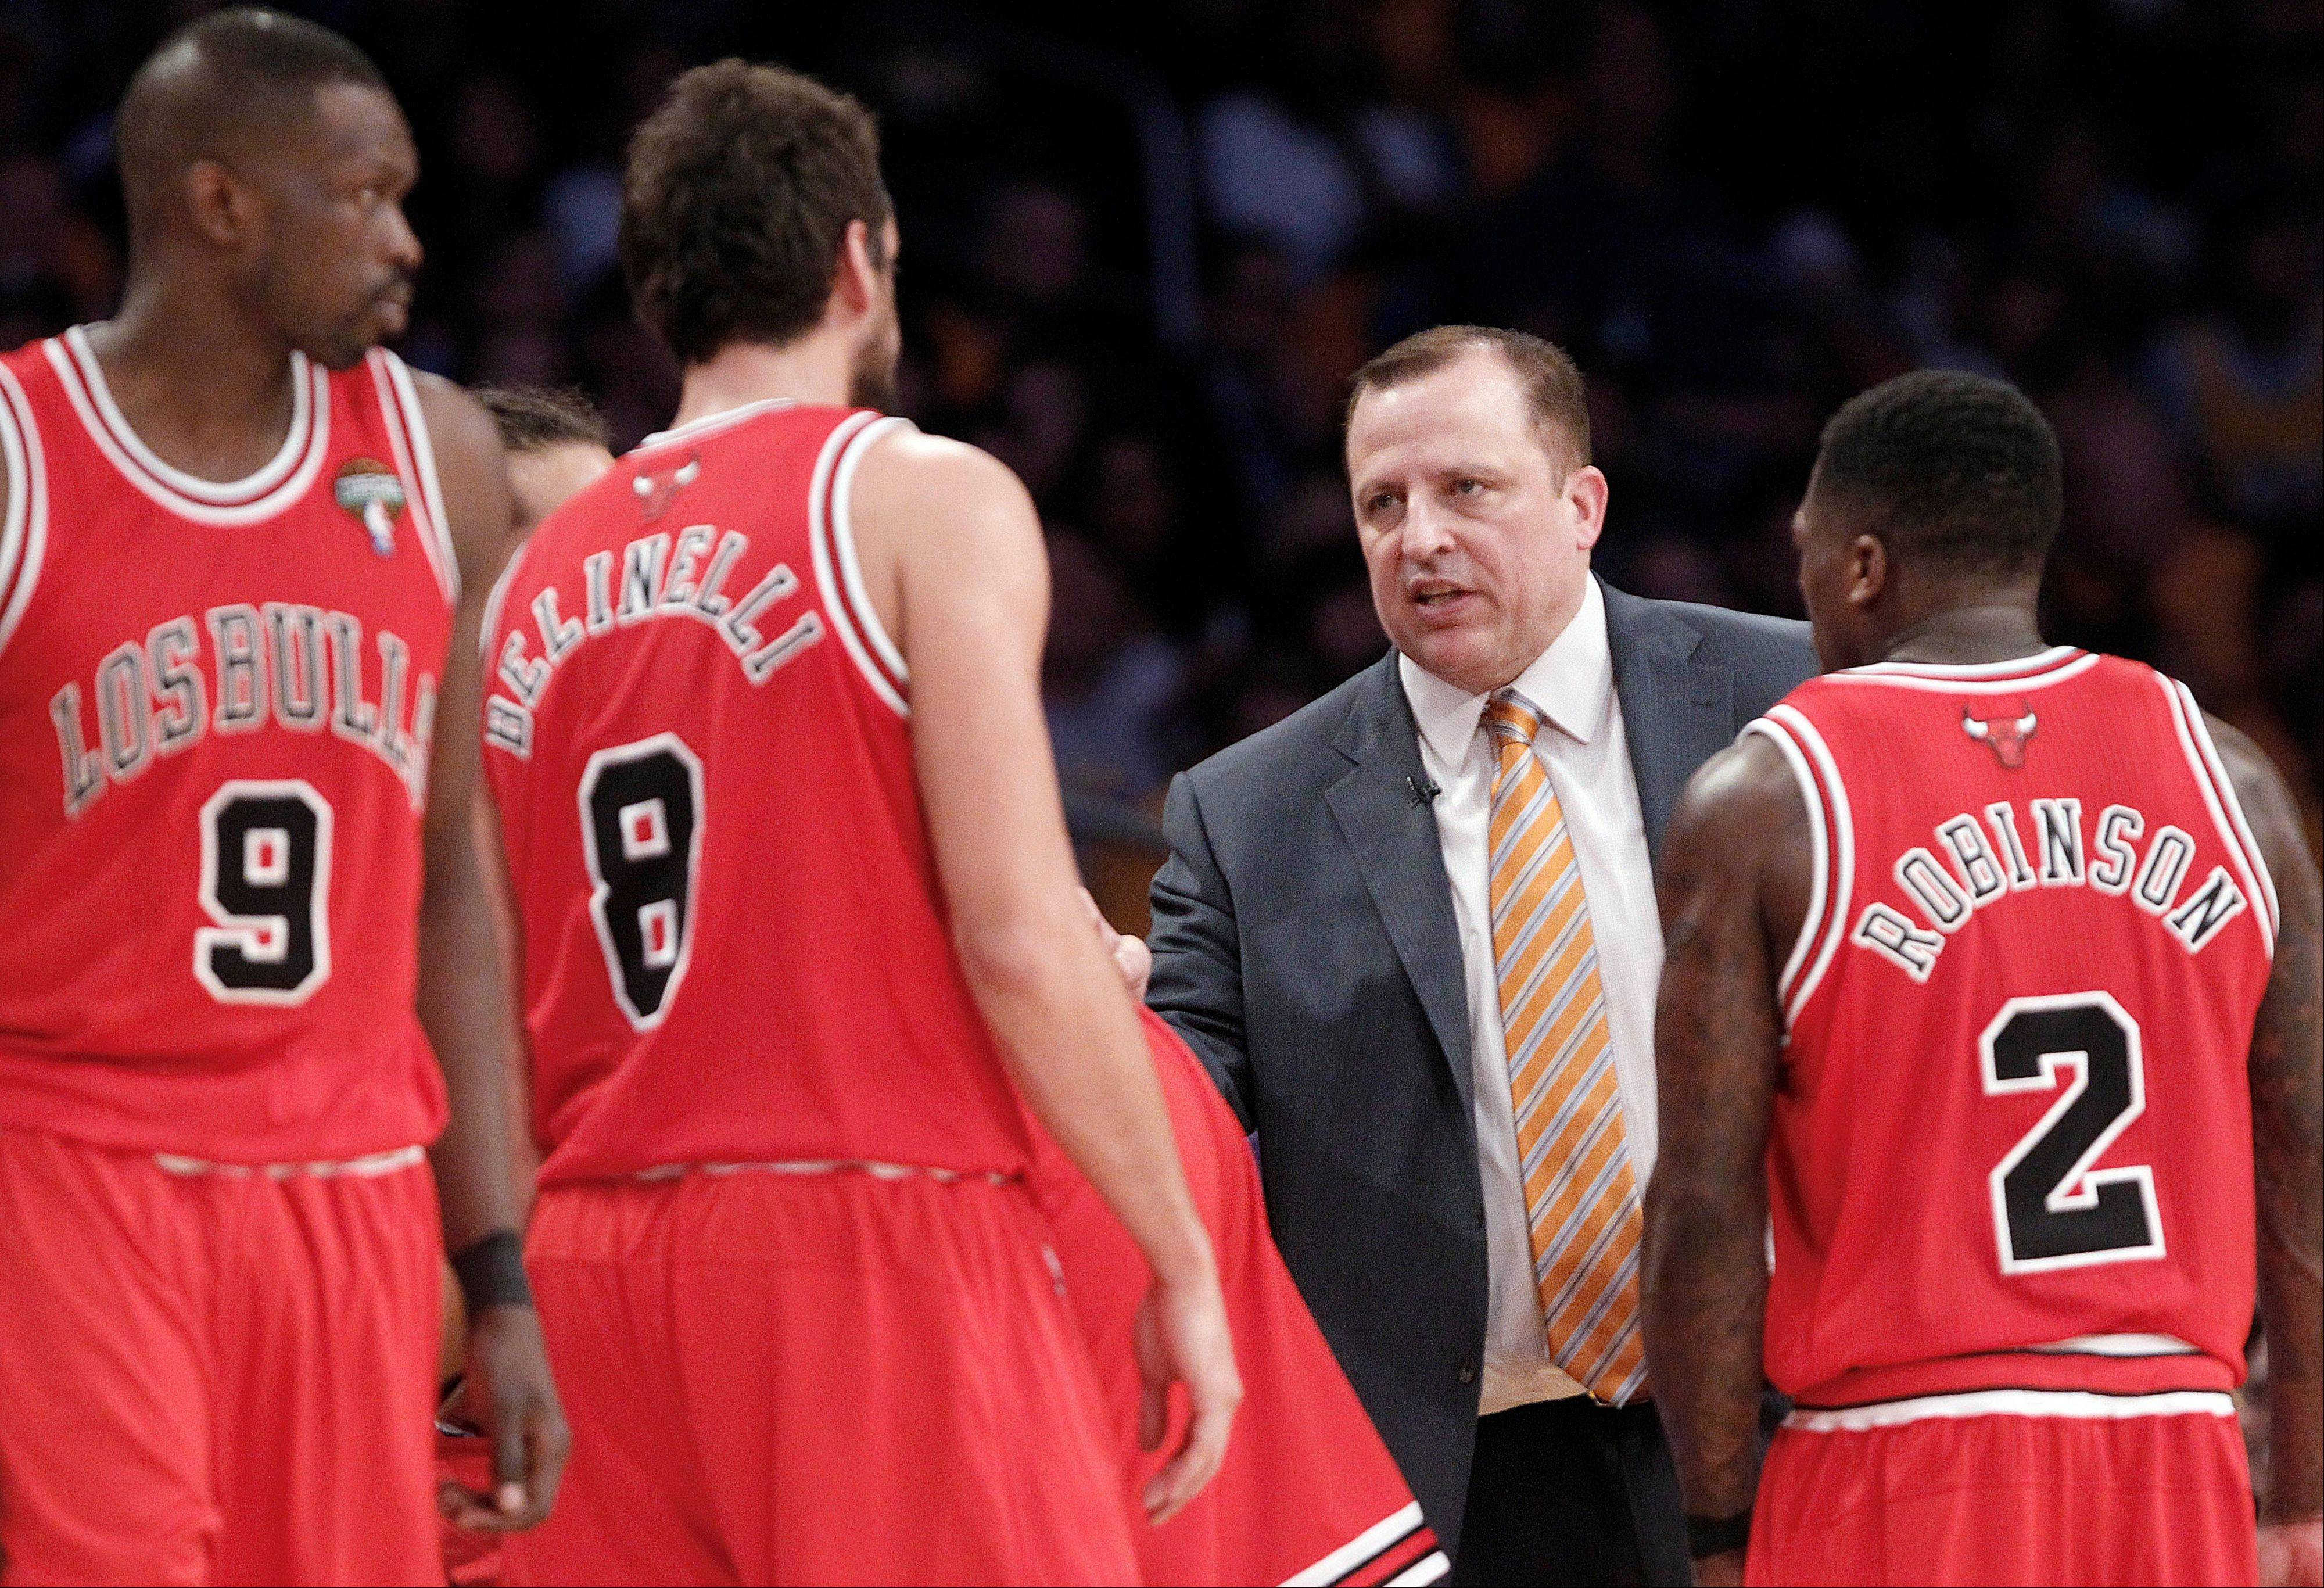 Bulls coach Tom Thibodeau talks with forward Luol Deng, from left, guard Marco Belinelli and guard Nate Robinson during Sunday's loss to the Lakers in Los Angeles.